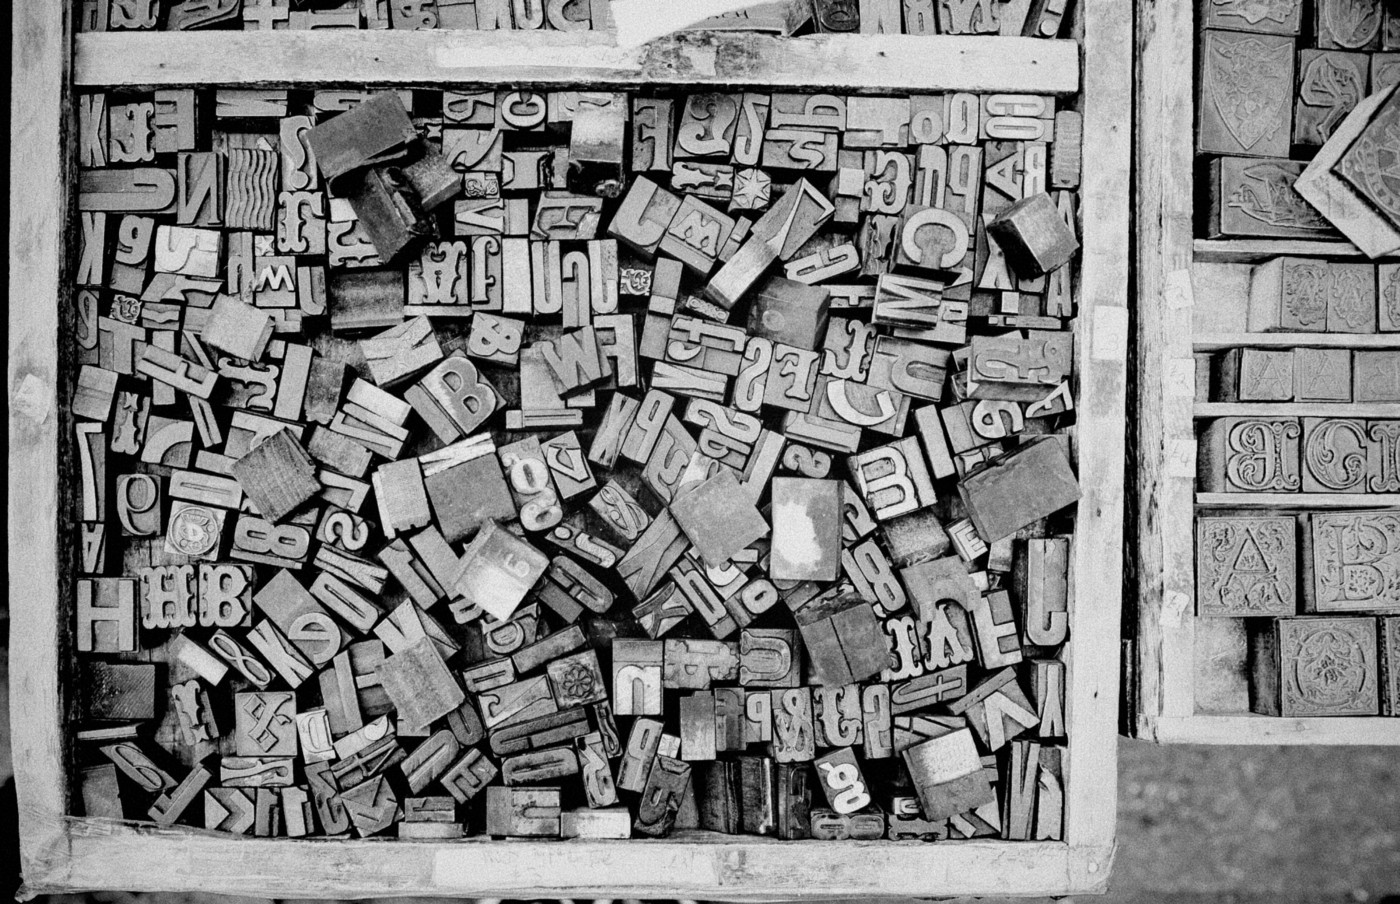 A box of timber type letters. The fundamental form of words from which there is so much possibility.